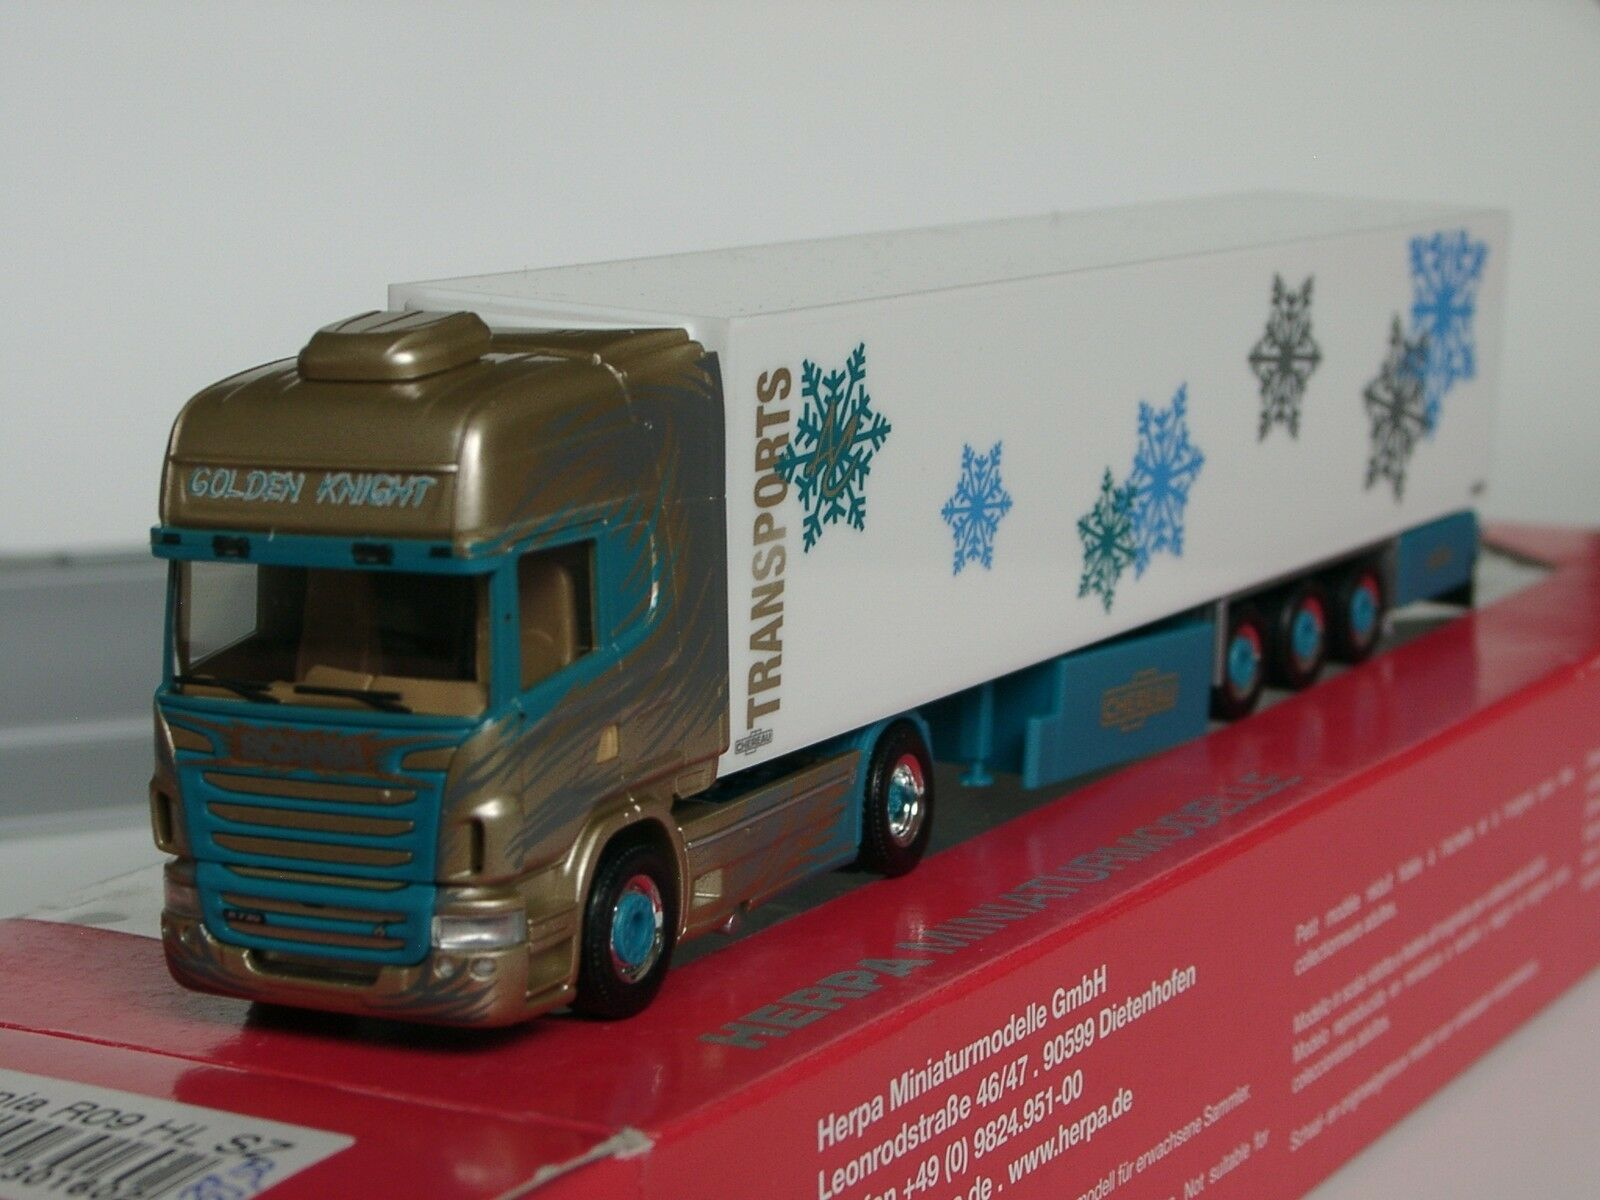 Herpa Scania R TL TL TL CHEVALIER  golden Night Kühlkoffer - 301602 - 1 87 sold out ac333b